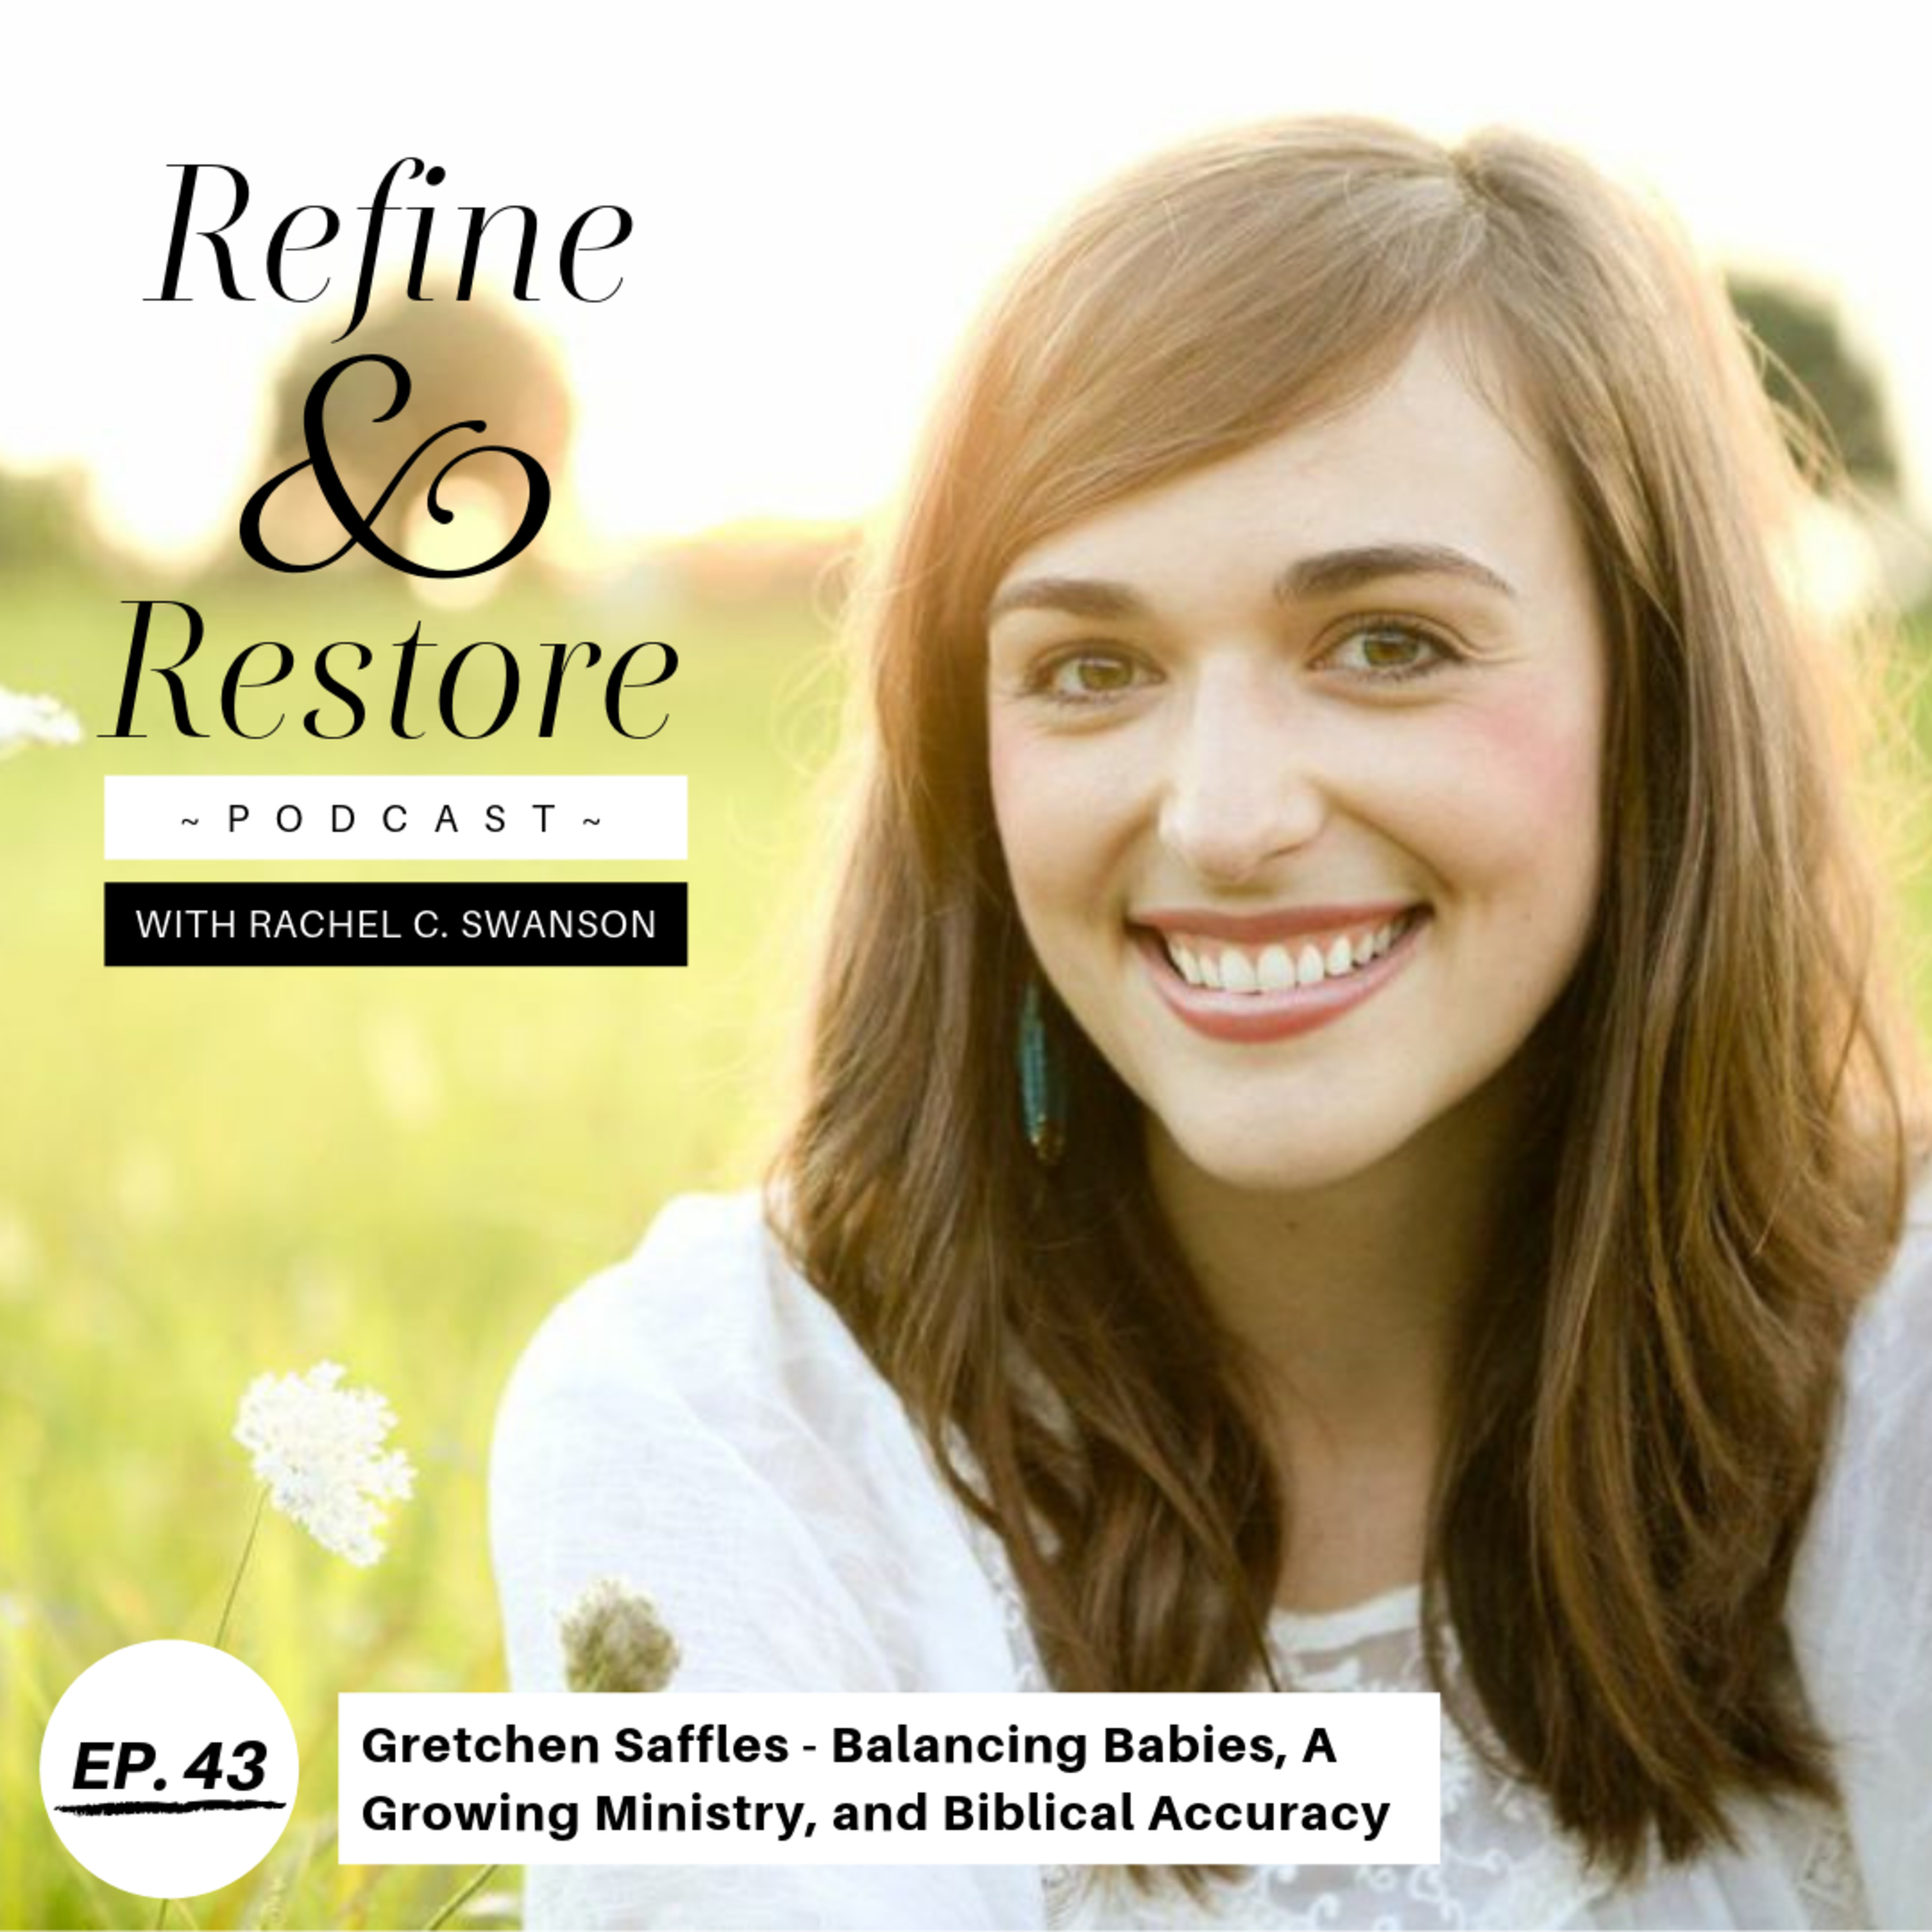 43: Gretchen Saffles - Balancing Babies, A Growing Ministry, and Biblical Accuracy